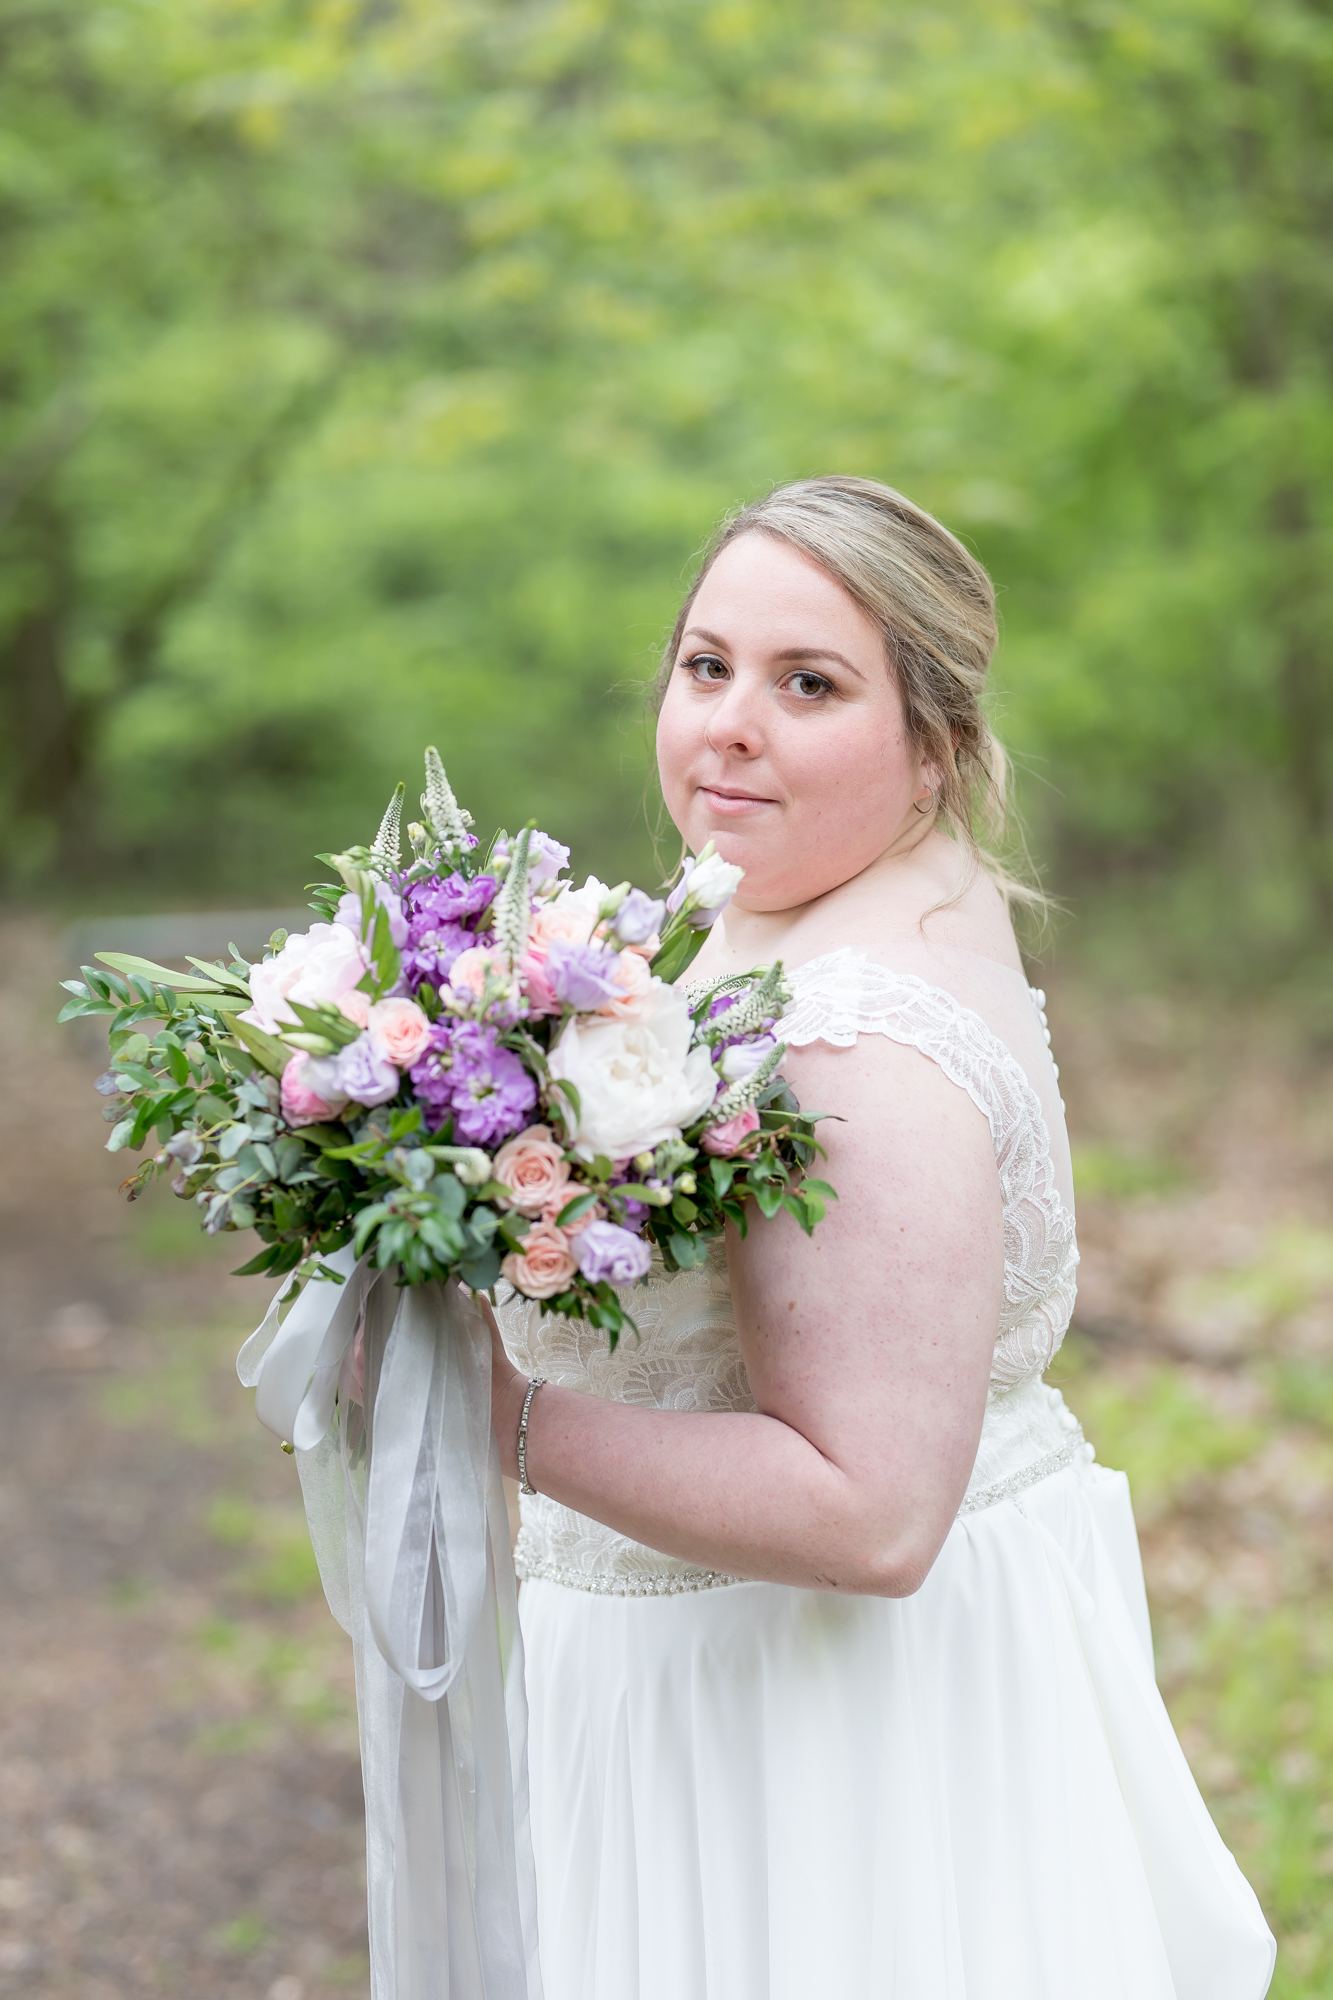 Weaver House of Pine Bend Park - Michigan Garden Wedding - The Overwhelmed Bride Wedding Blog